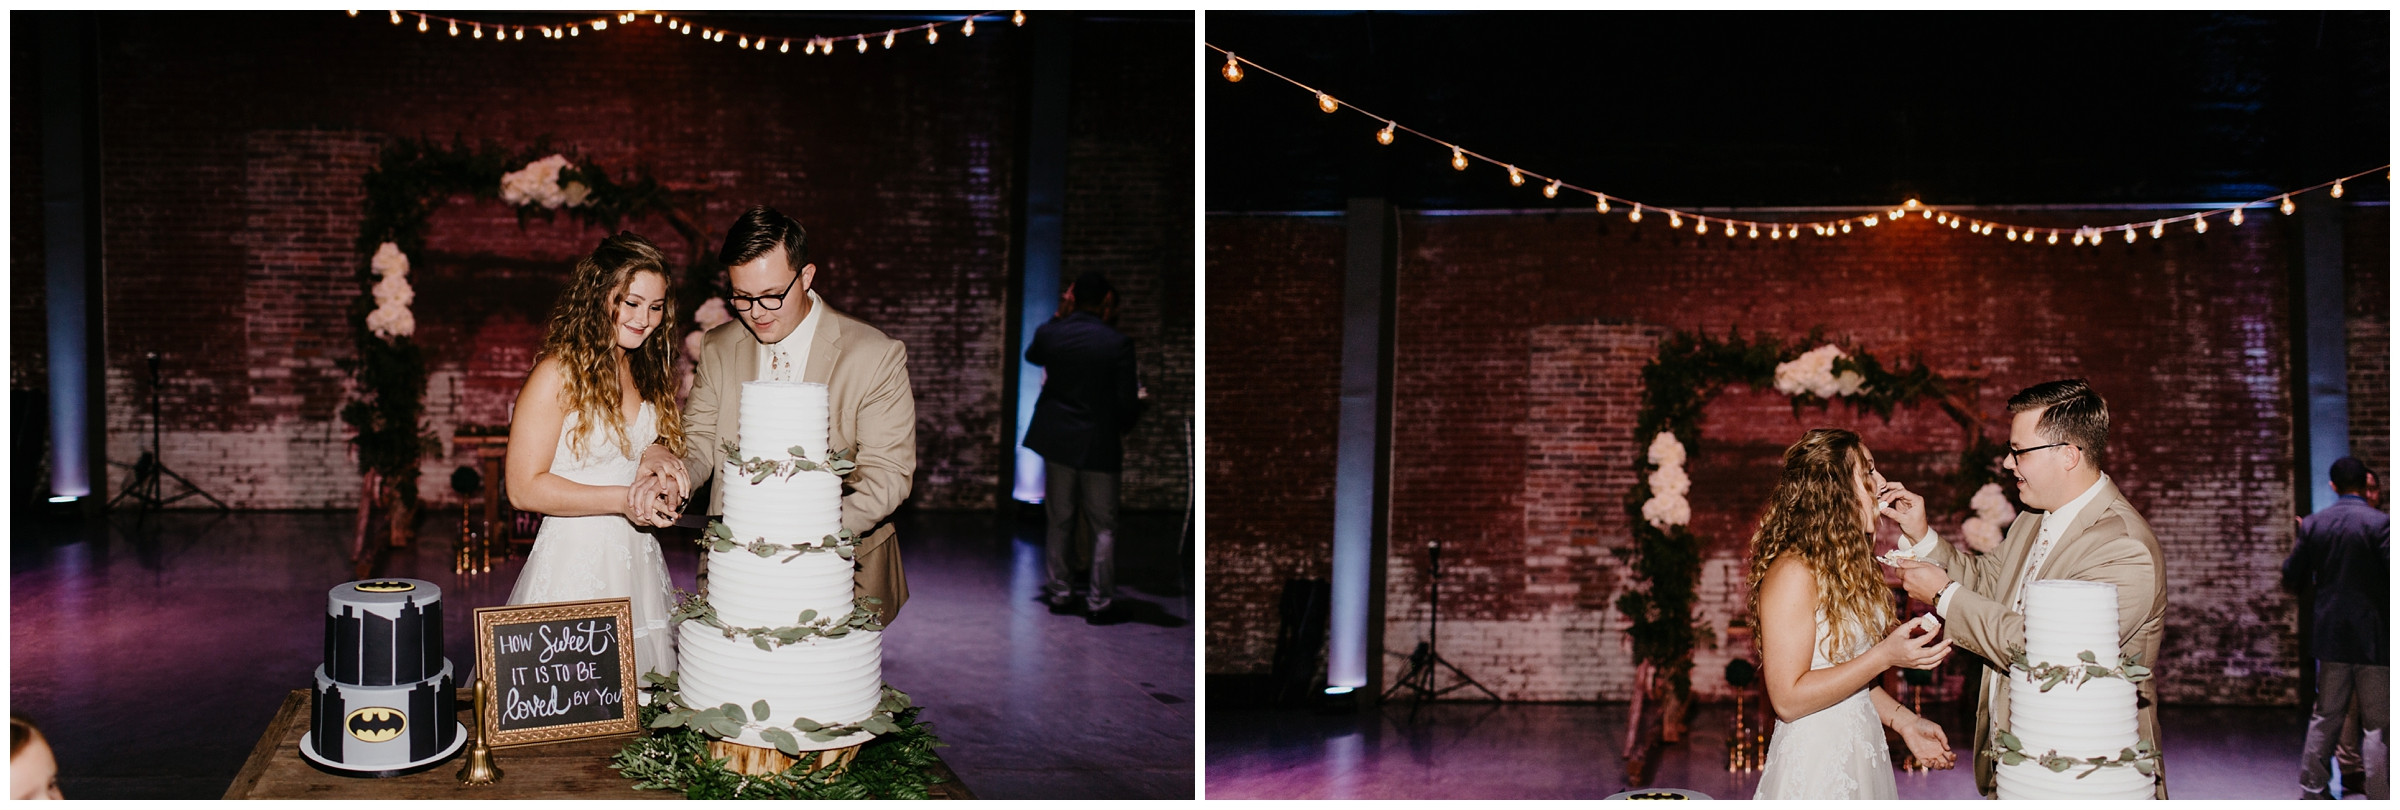 bride and groom cut cake at industrial wedding springfield missouri